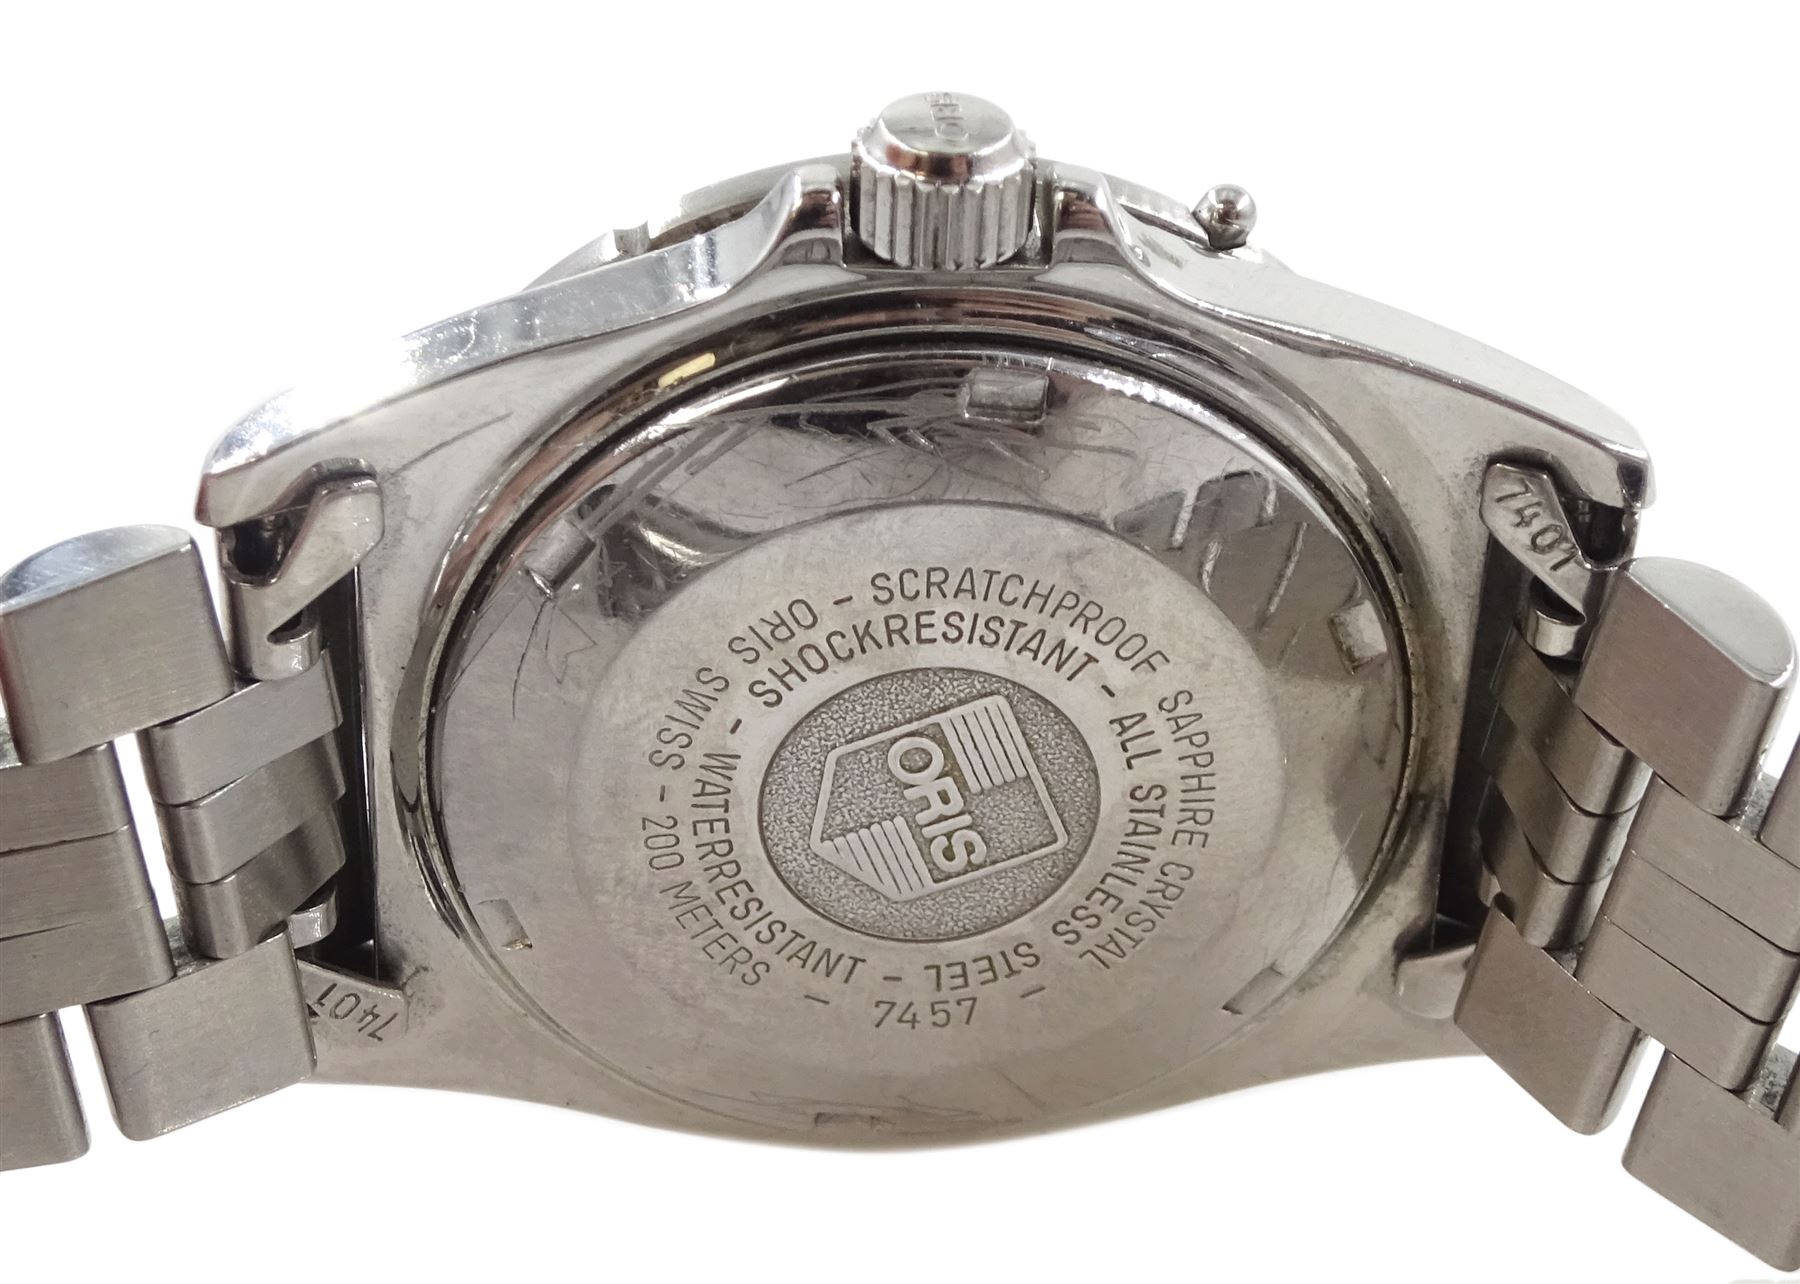 Oris automatic stainless steel divers wristwatch - Image 2 of 2